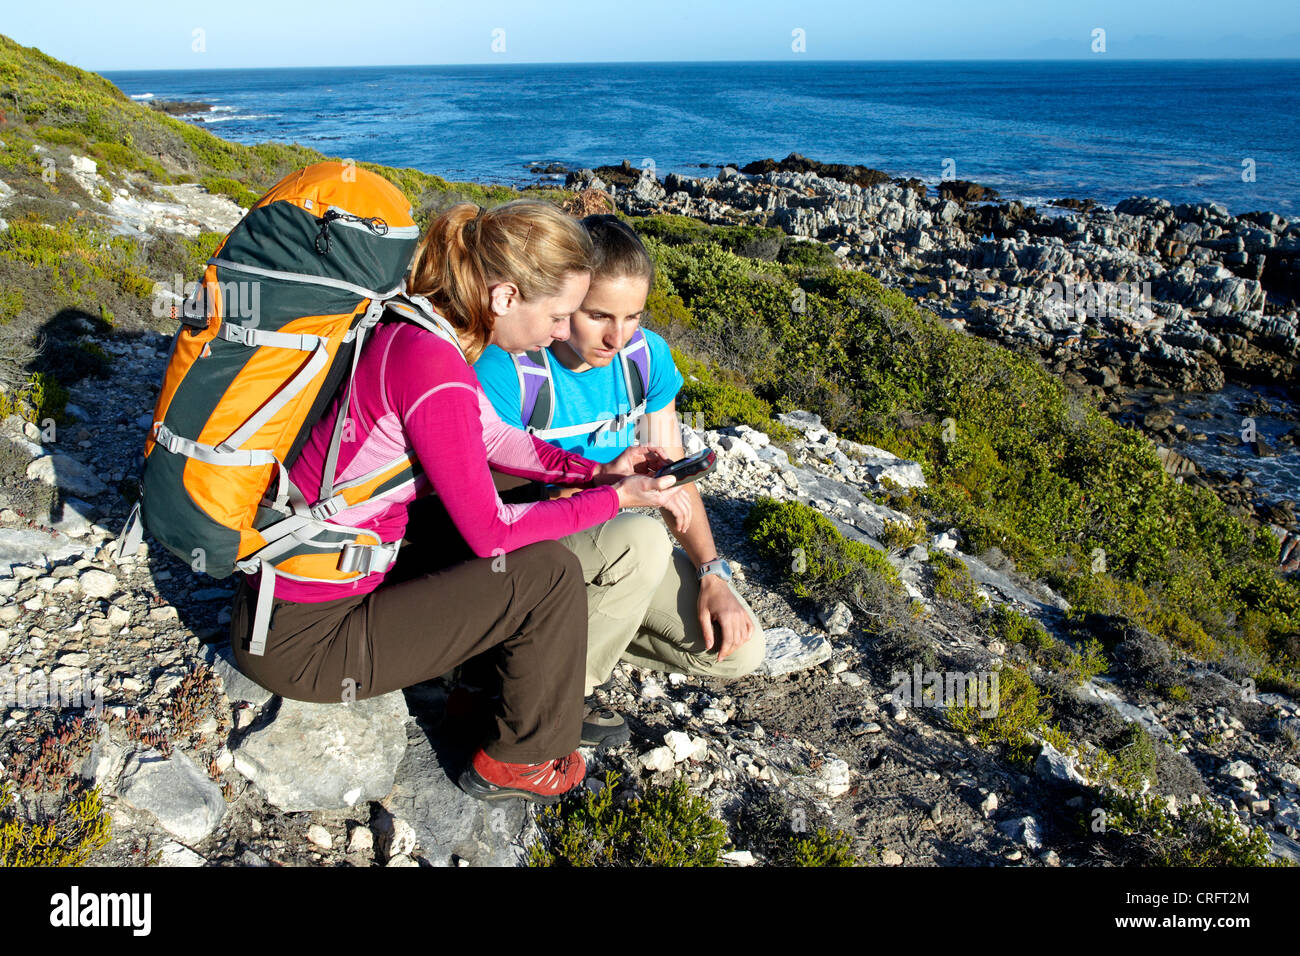 Two women checking a GPS device while hiking on an ocean trail between Gansbaai and De Kelders. South Africa. - Stock Image